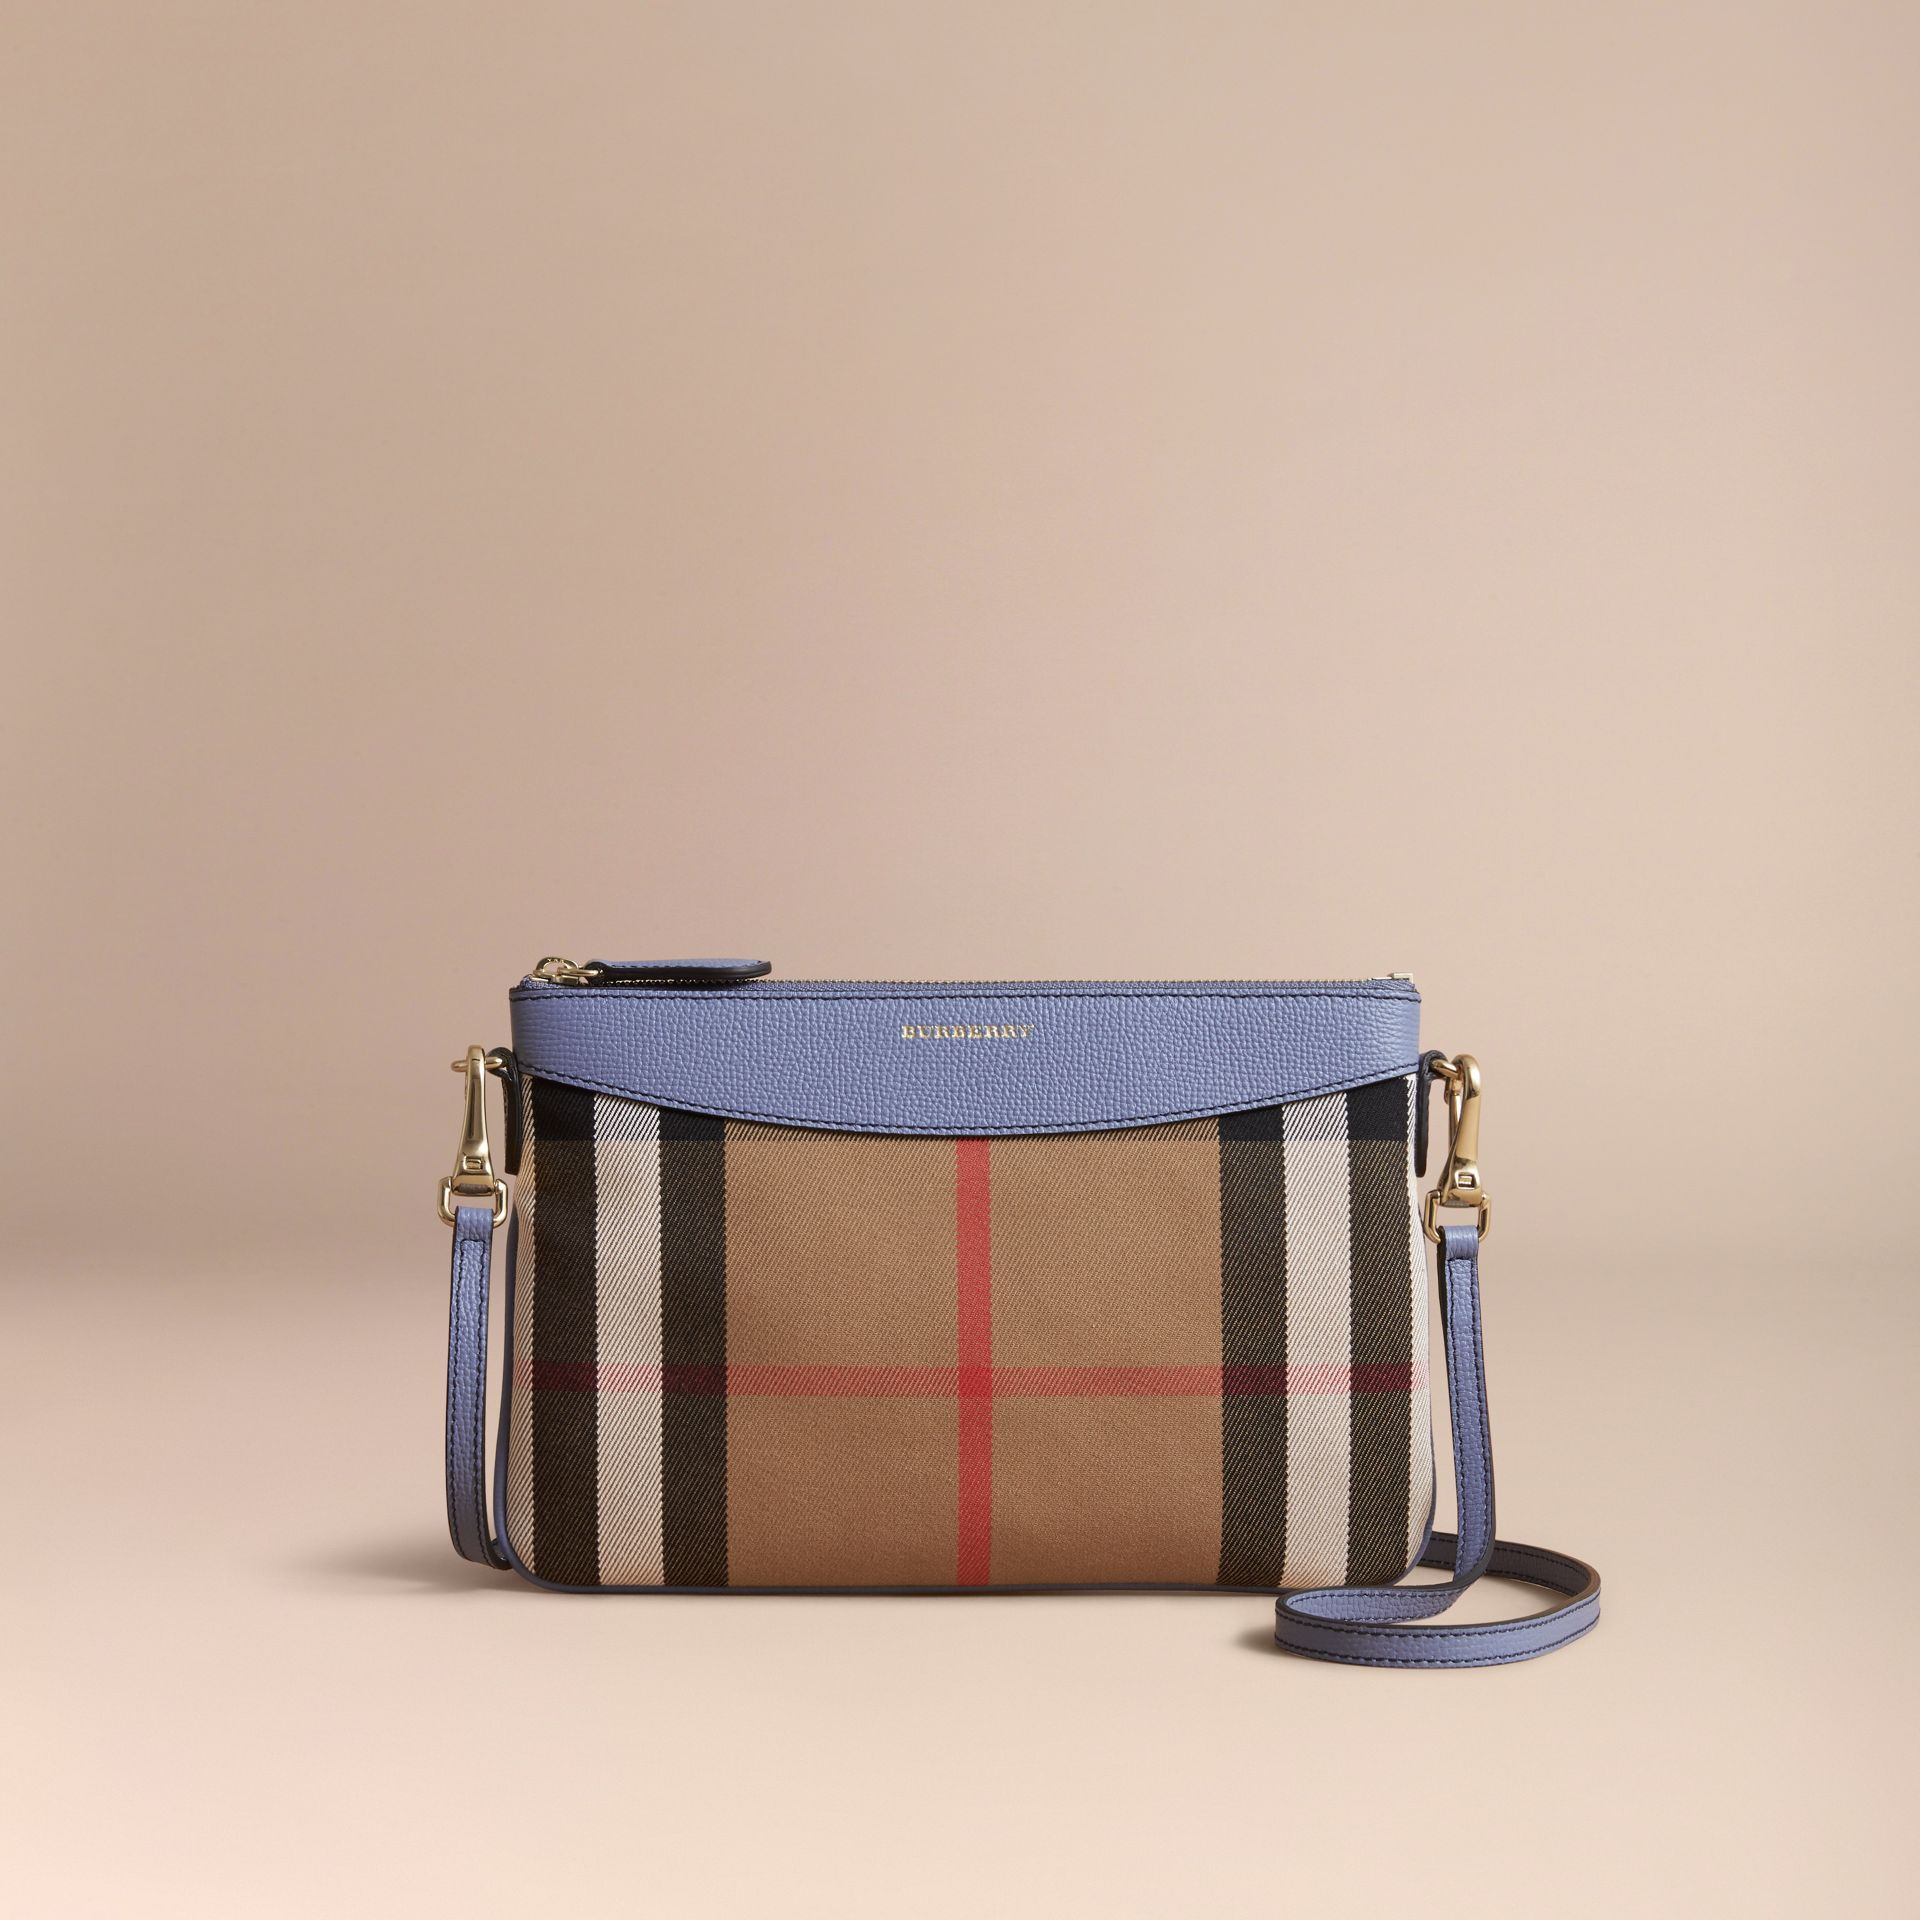 House Check and Leather Clutch Bag in Slate Blue - Women | Burberry - gallery image 7